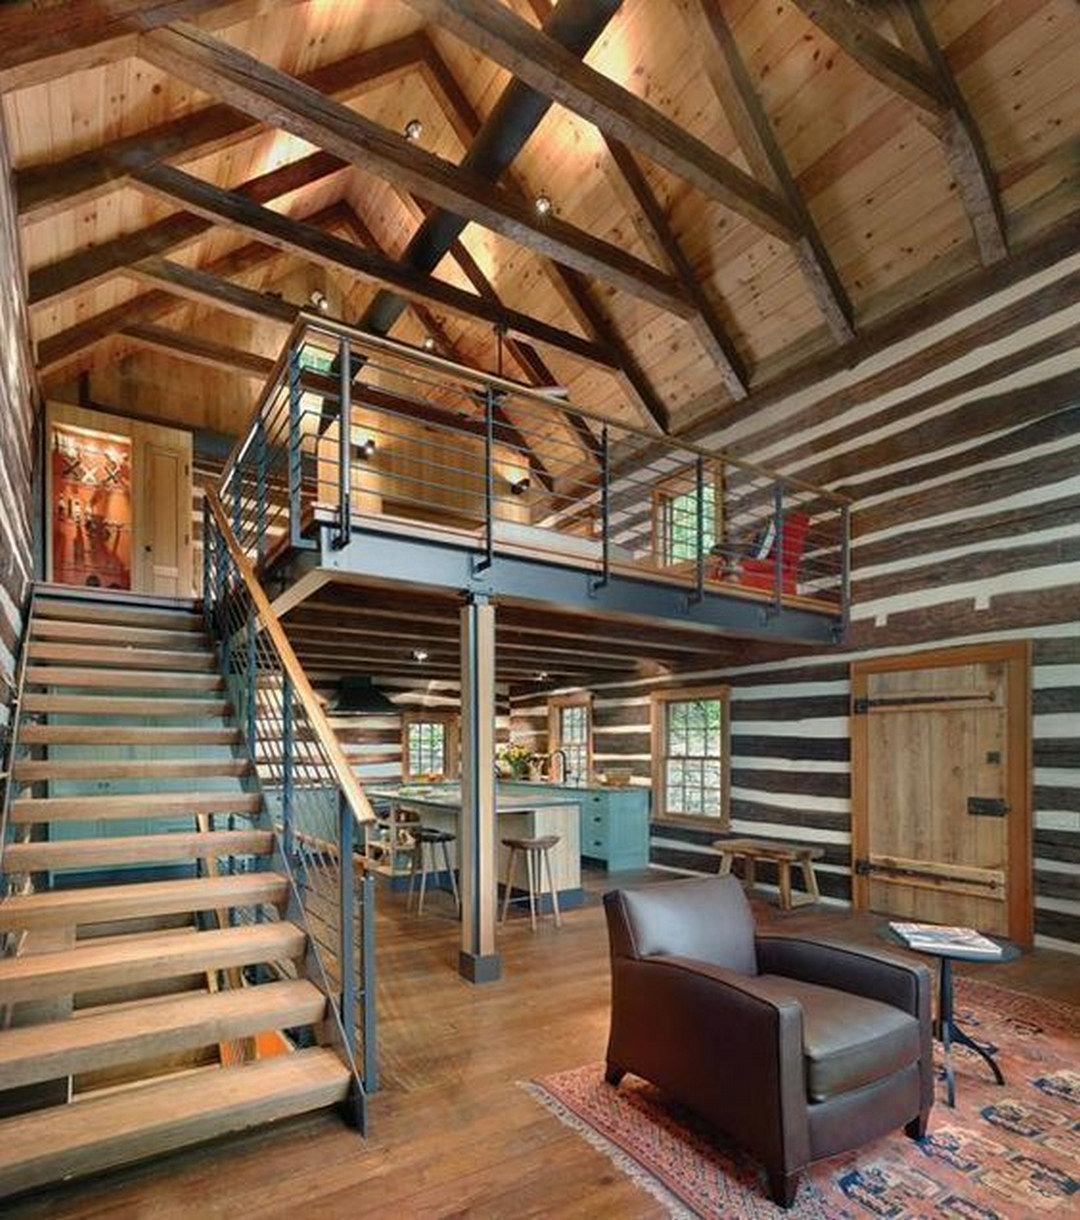 87 Barn Style Interior Design Ideas | Home Decor, Architecture, and Metal Home Design Plans Html on pole barn design plans, metal home projects, metal interior design, metal roofing plans, metal office plans, metal sculpture plans, metal home kitchen, metal home furniture, metal home models, metal home blueprints, metal health plans, horse barn design plans,